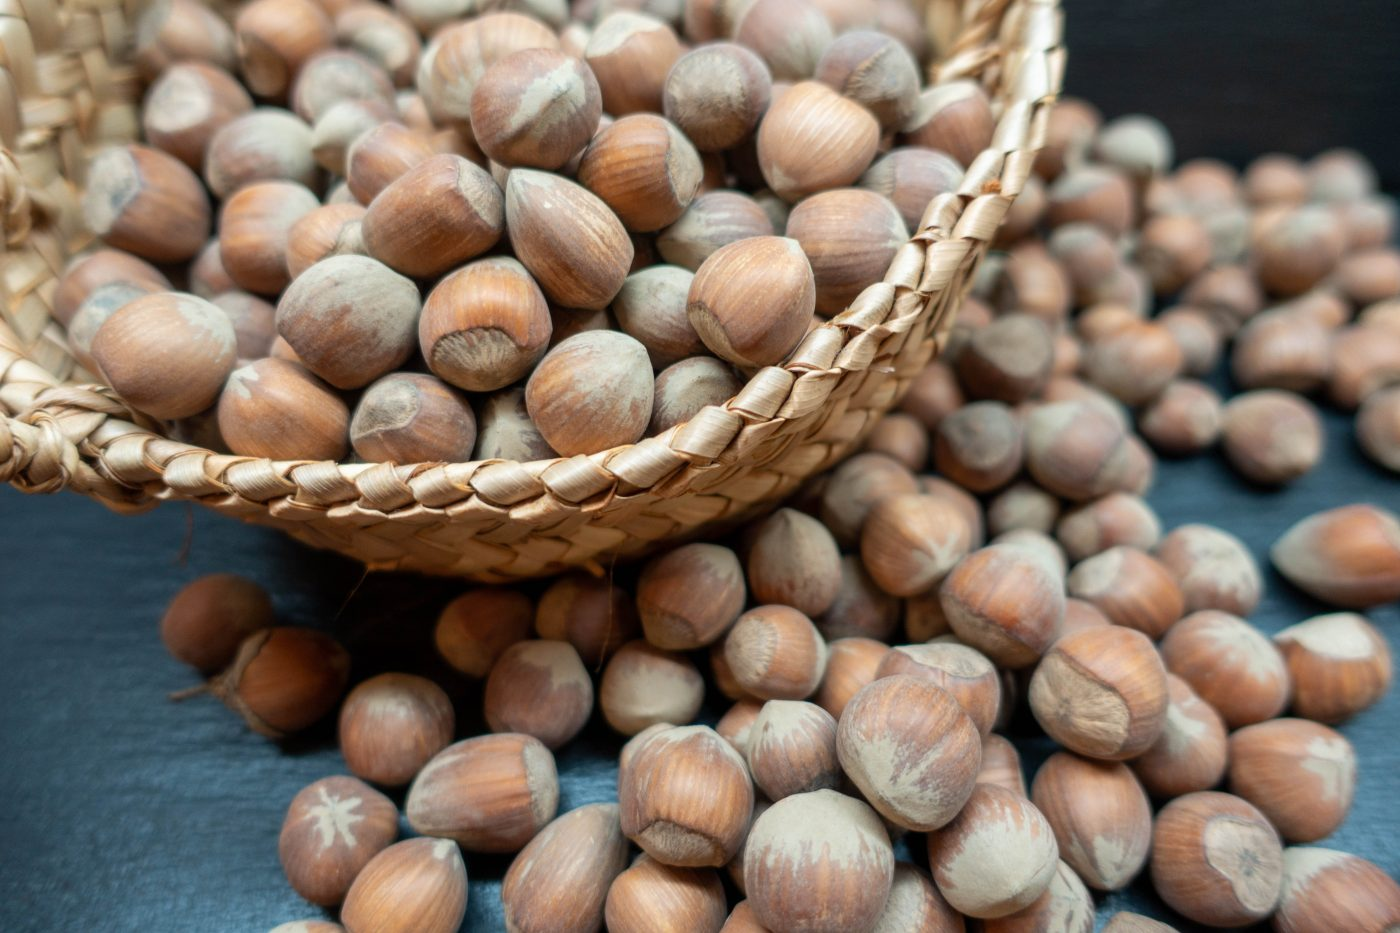 Hazelnuts in and in front of a basket for my nut bread recipe